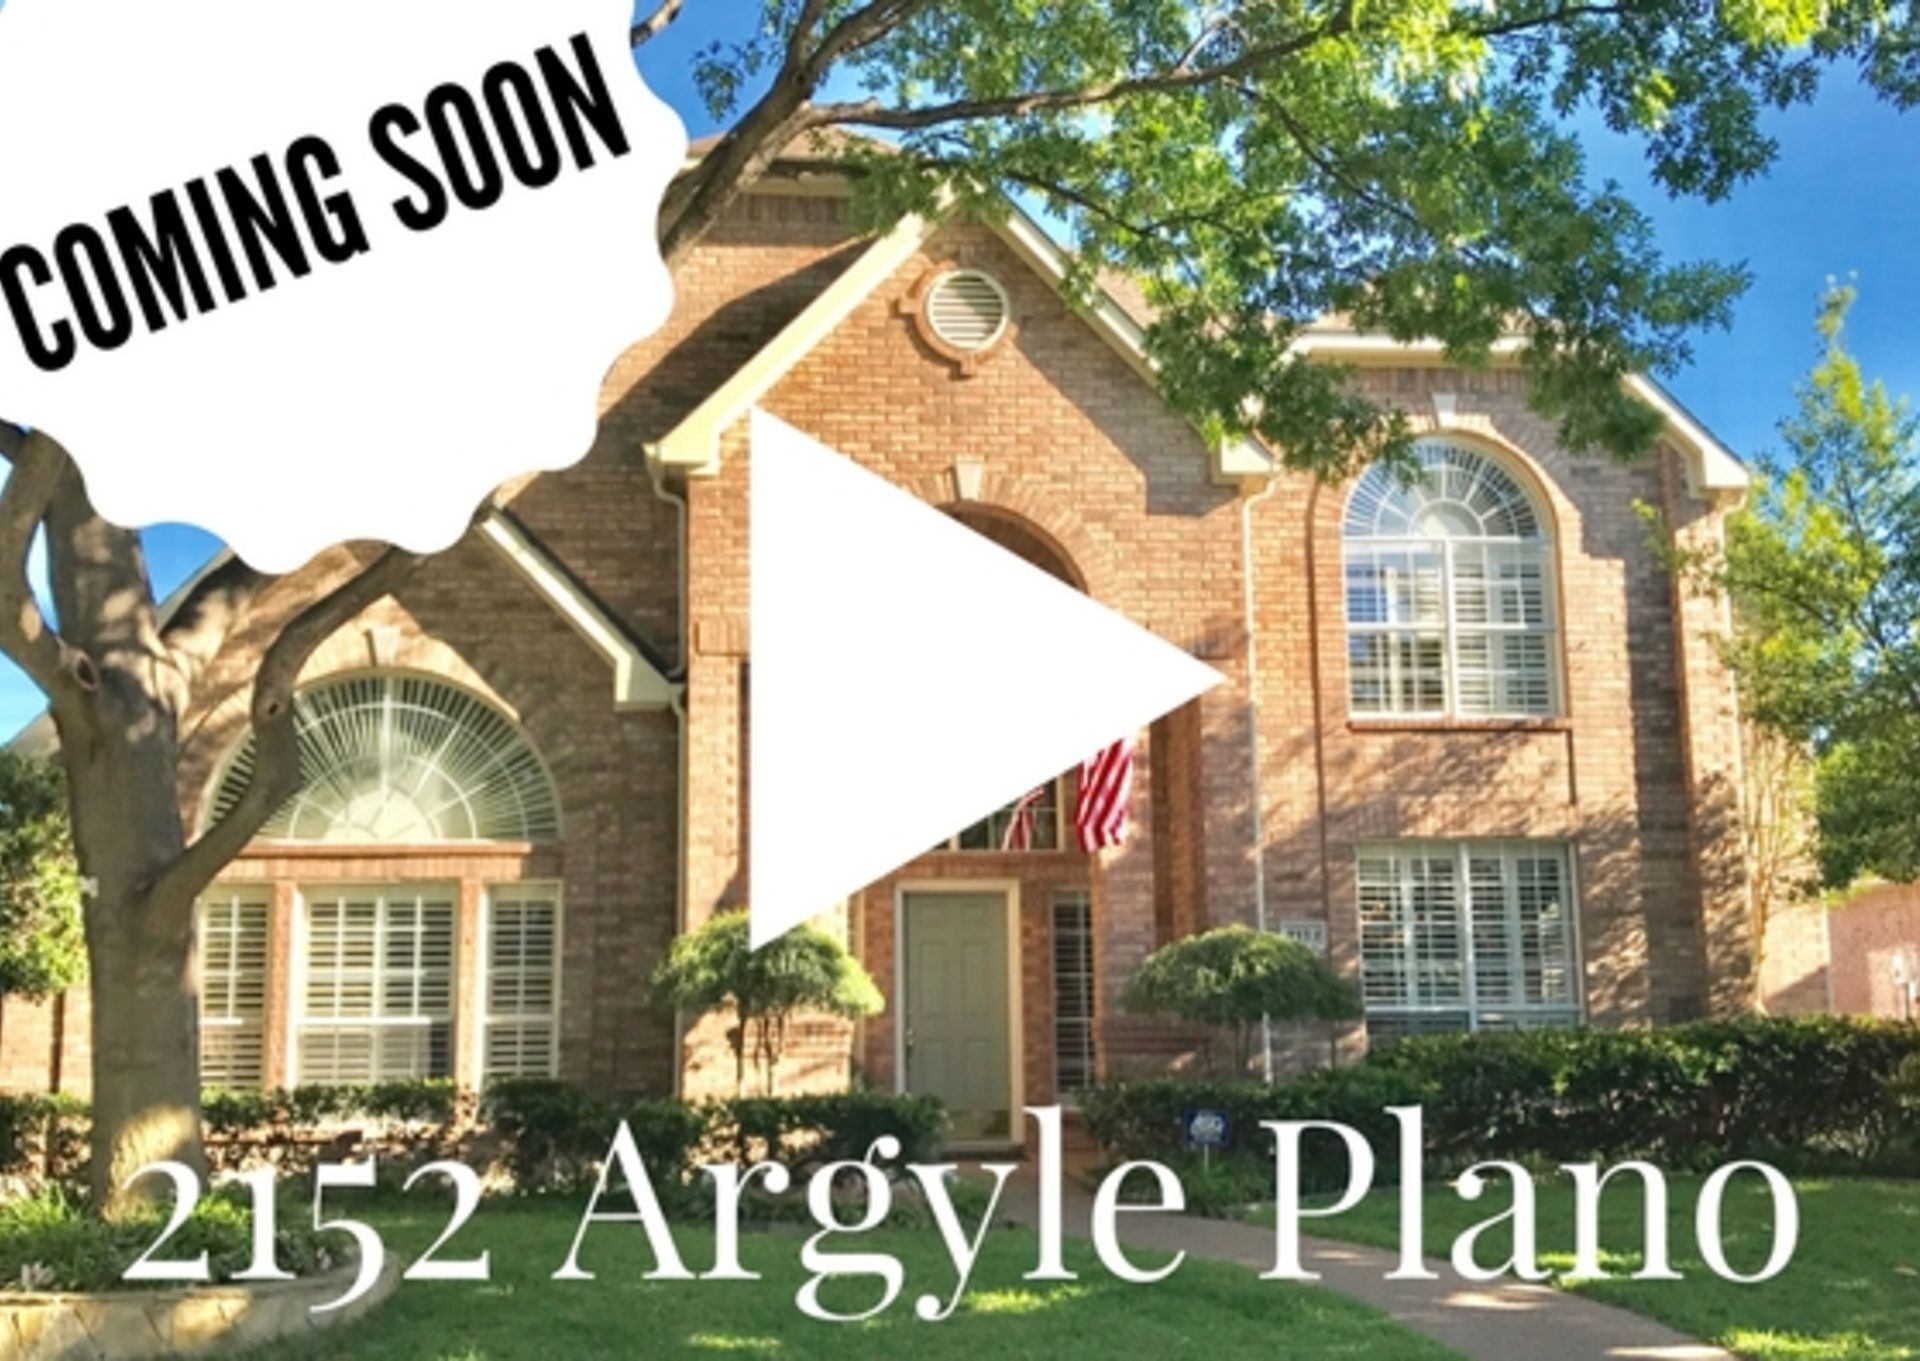 Sneak Preview of our Newest Listing!